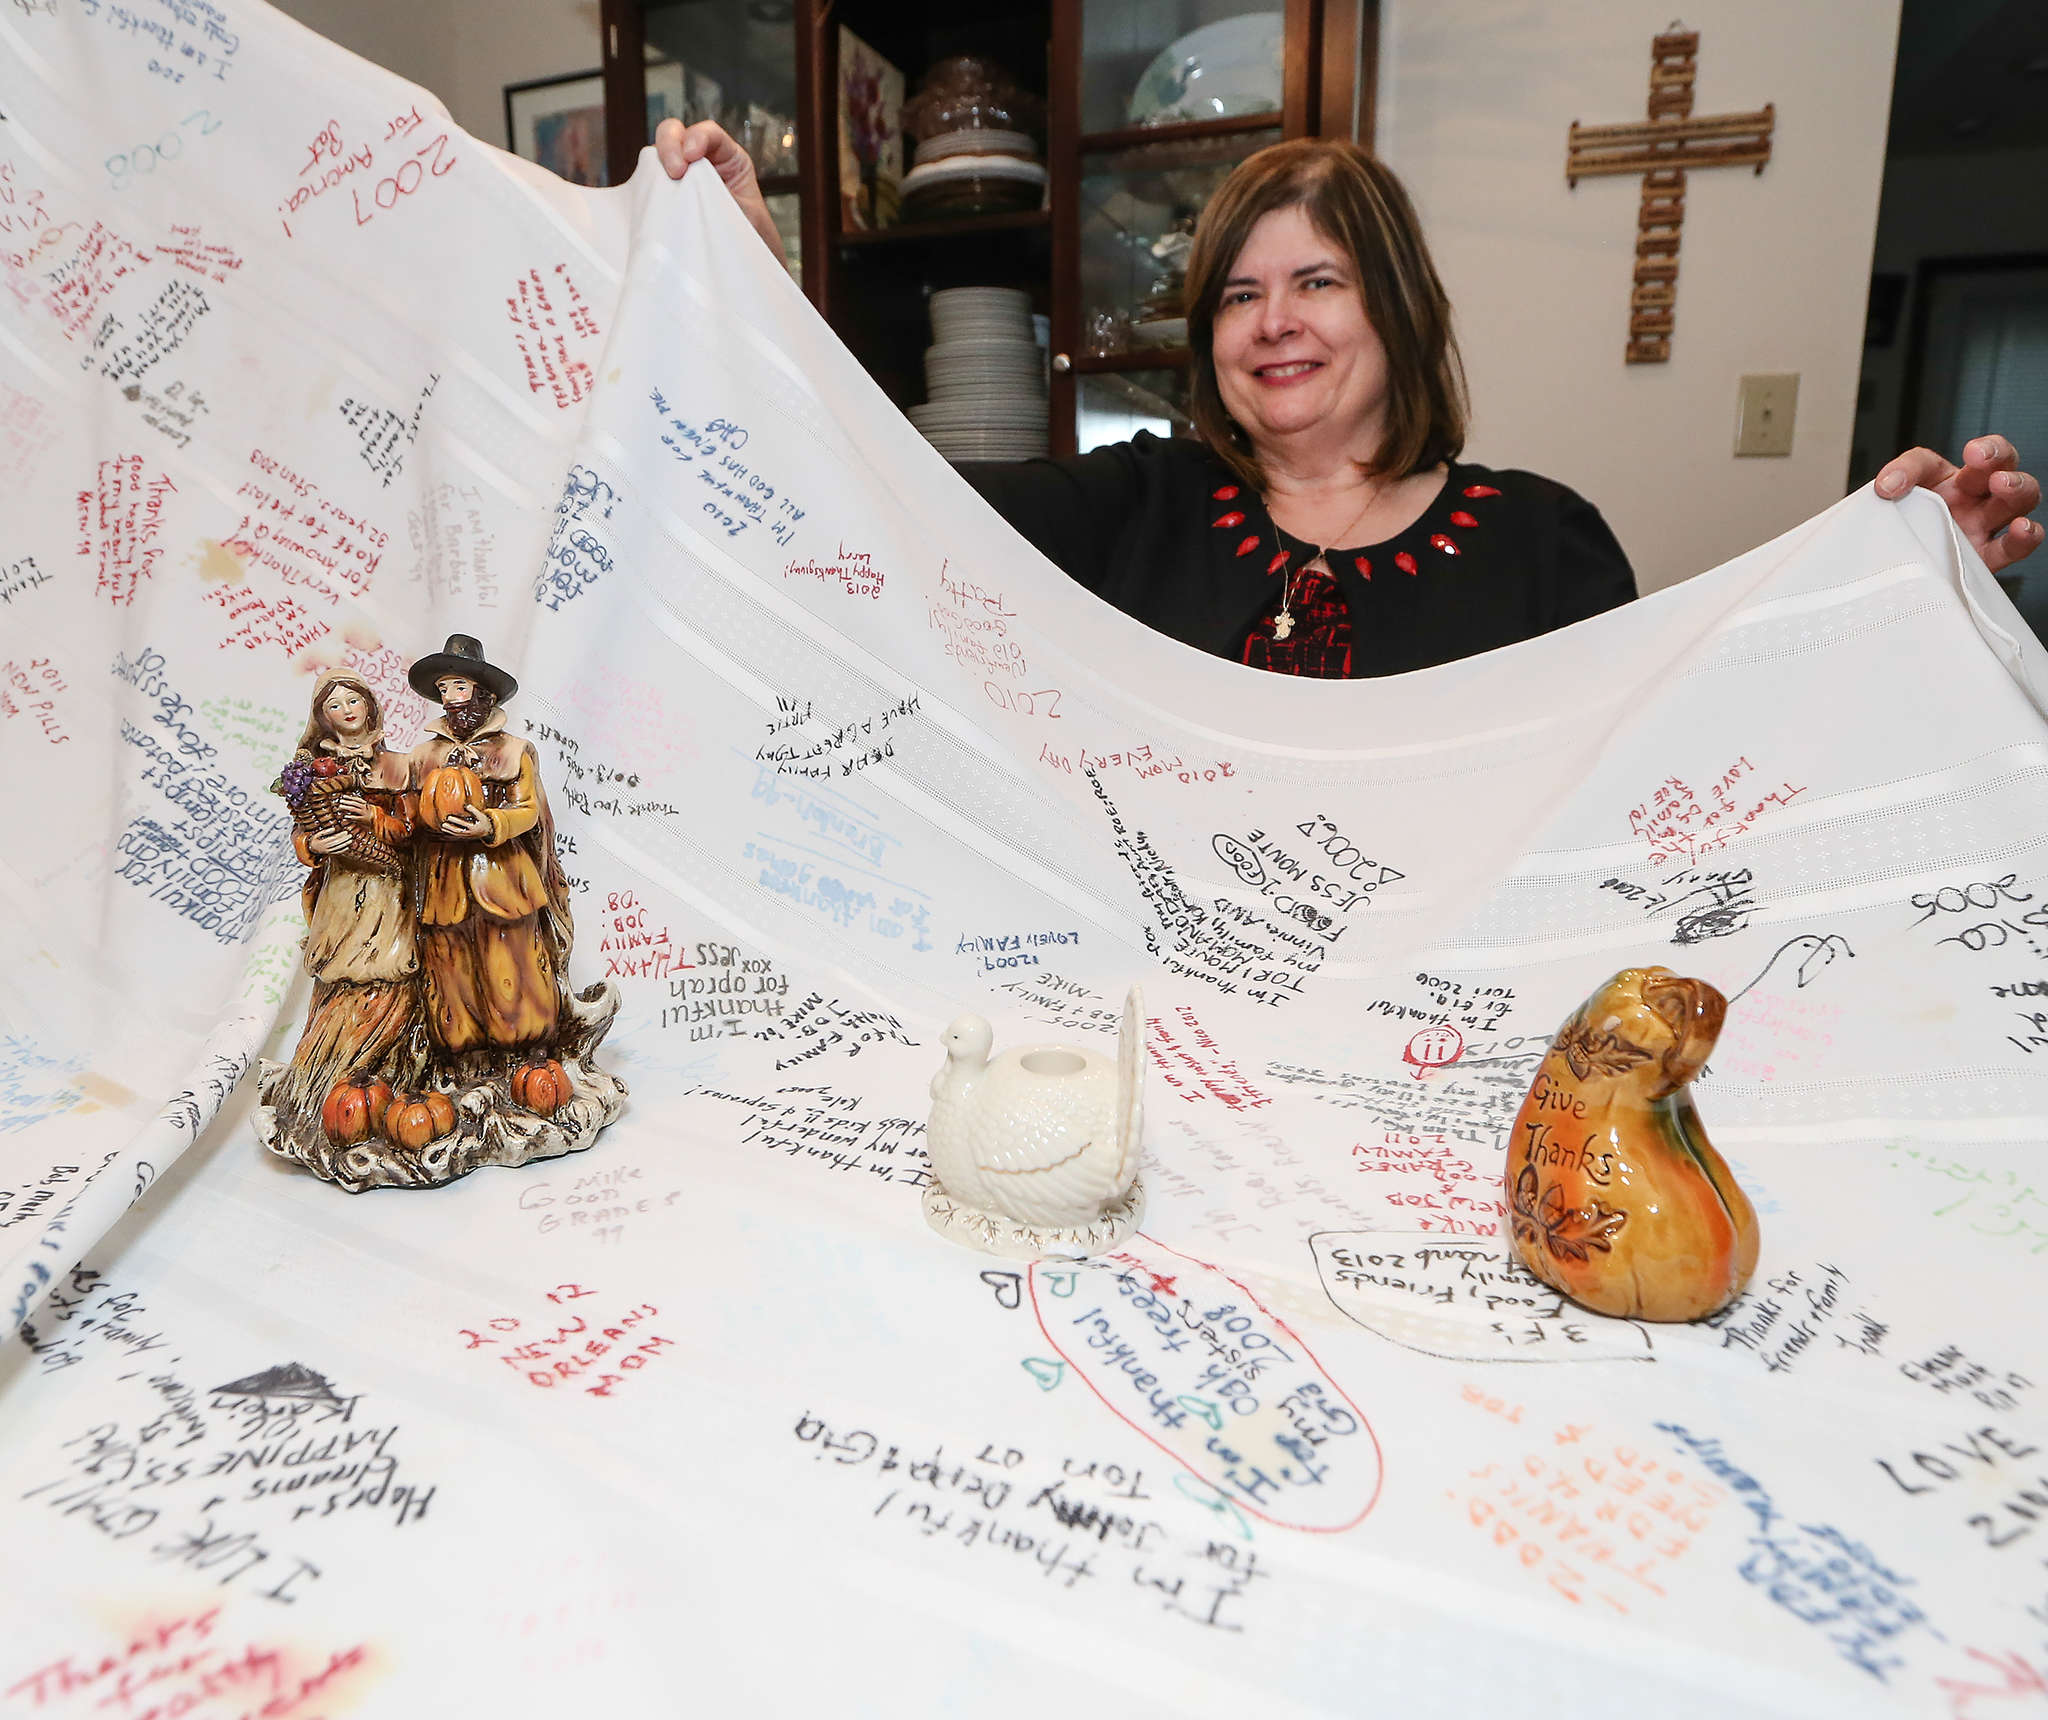 Pat Quigley shows a previous polyester tablecloth with notes from family members gathered for the holidays. Other families have similar traditions, though it is difficult to determine the source of the idea.